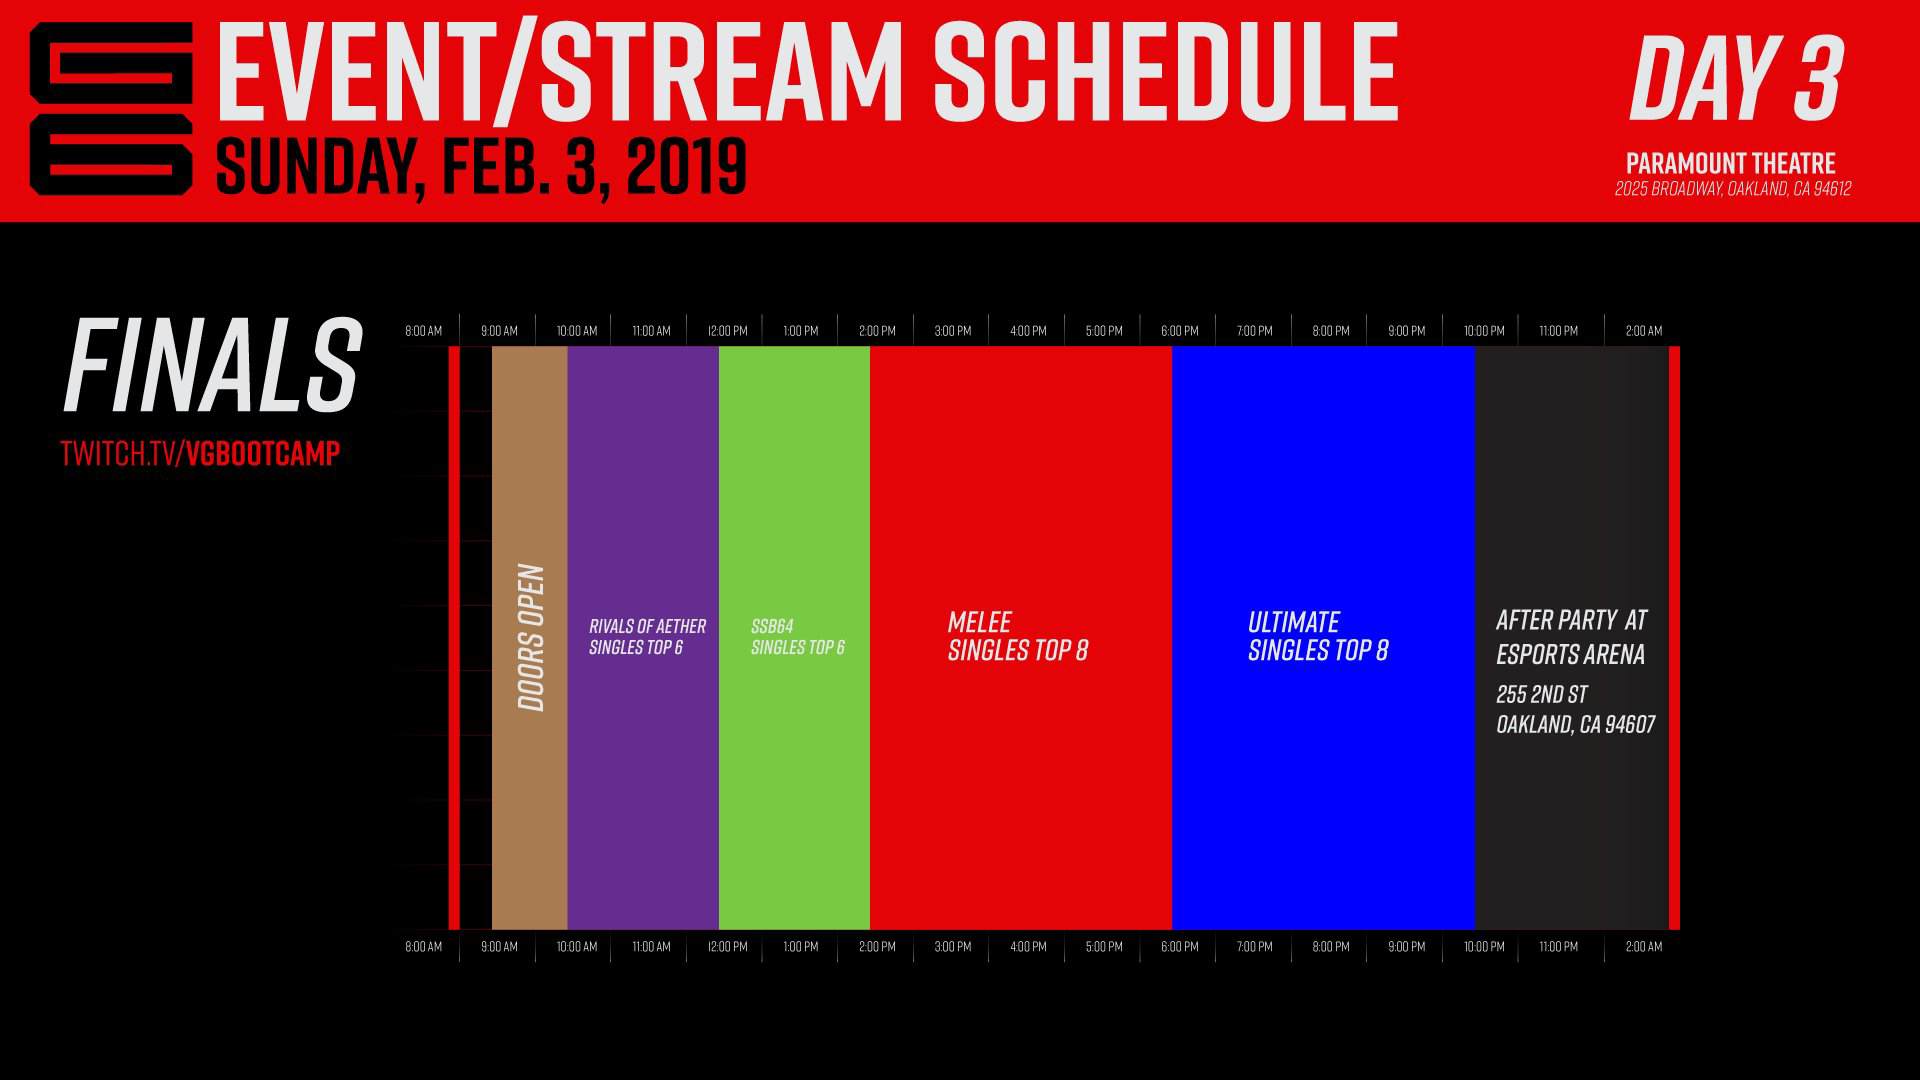 Genesis 6 Event Schedule 3 out of 3 image gallery